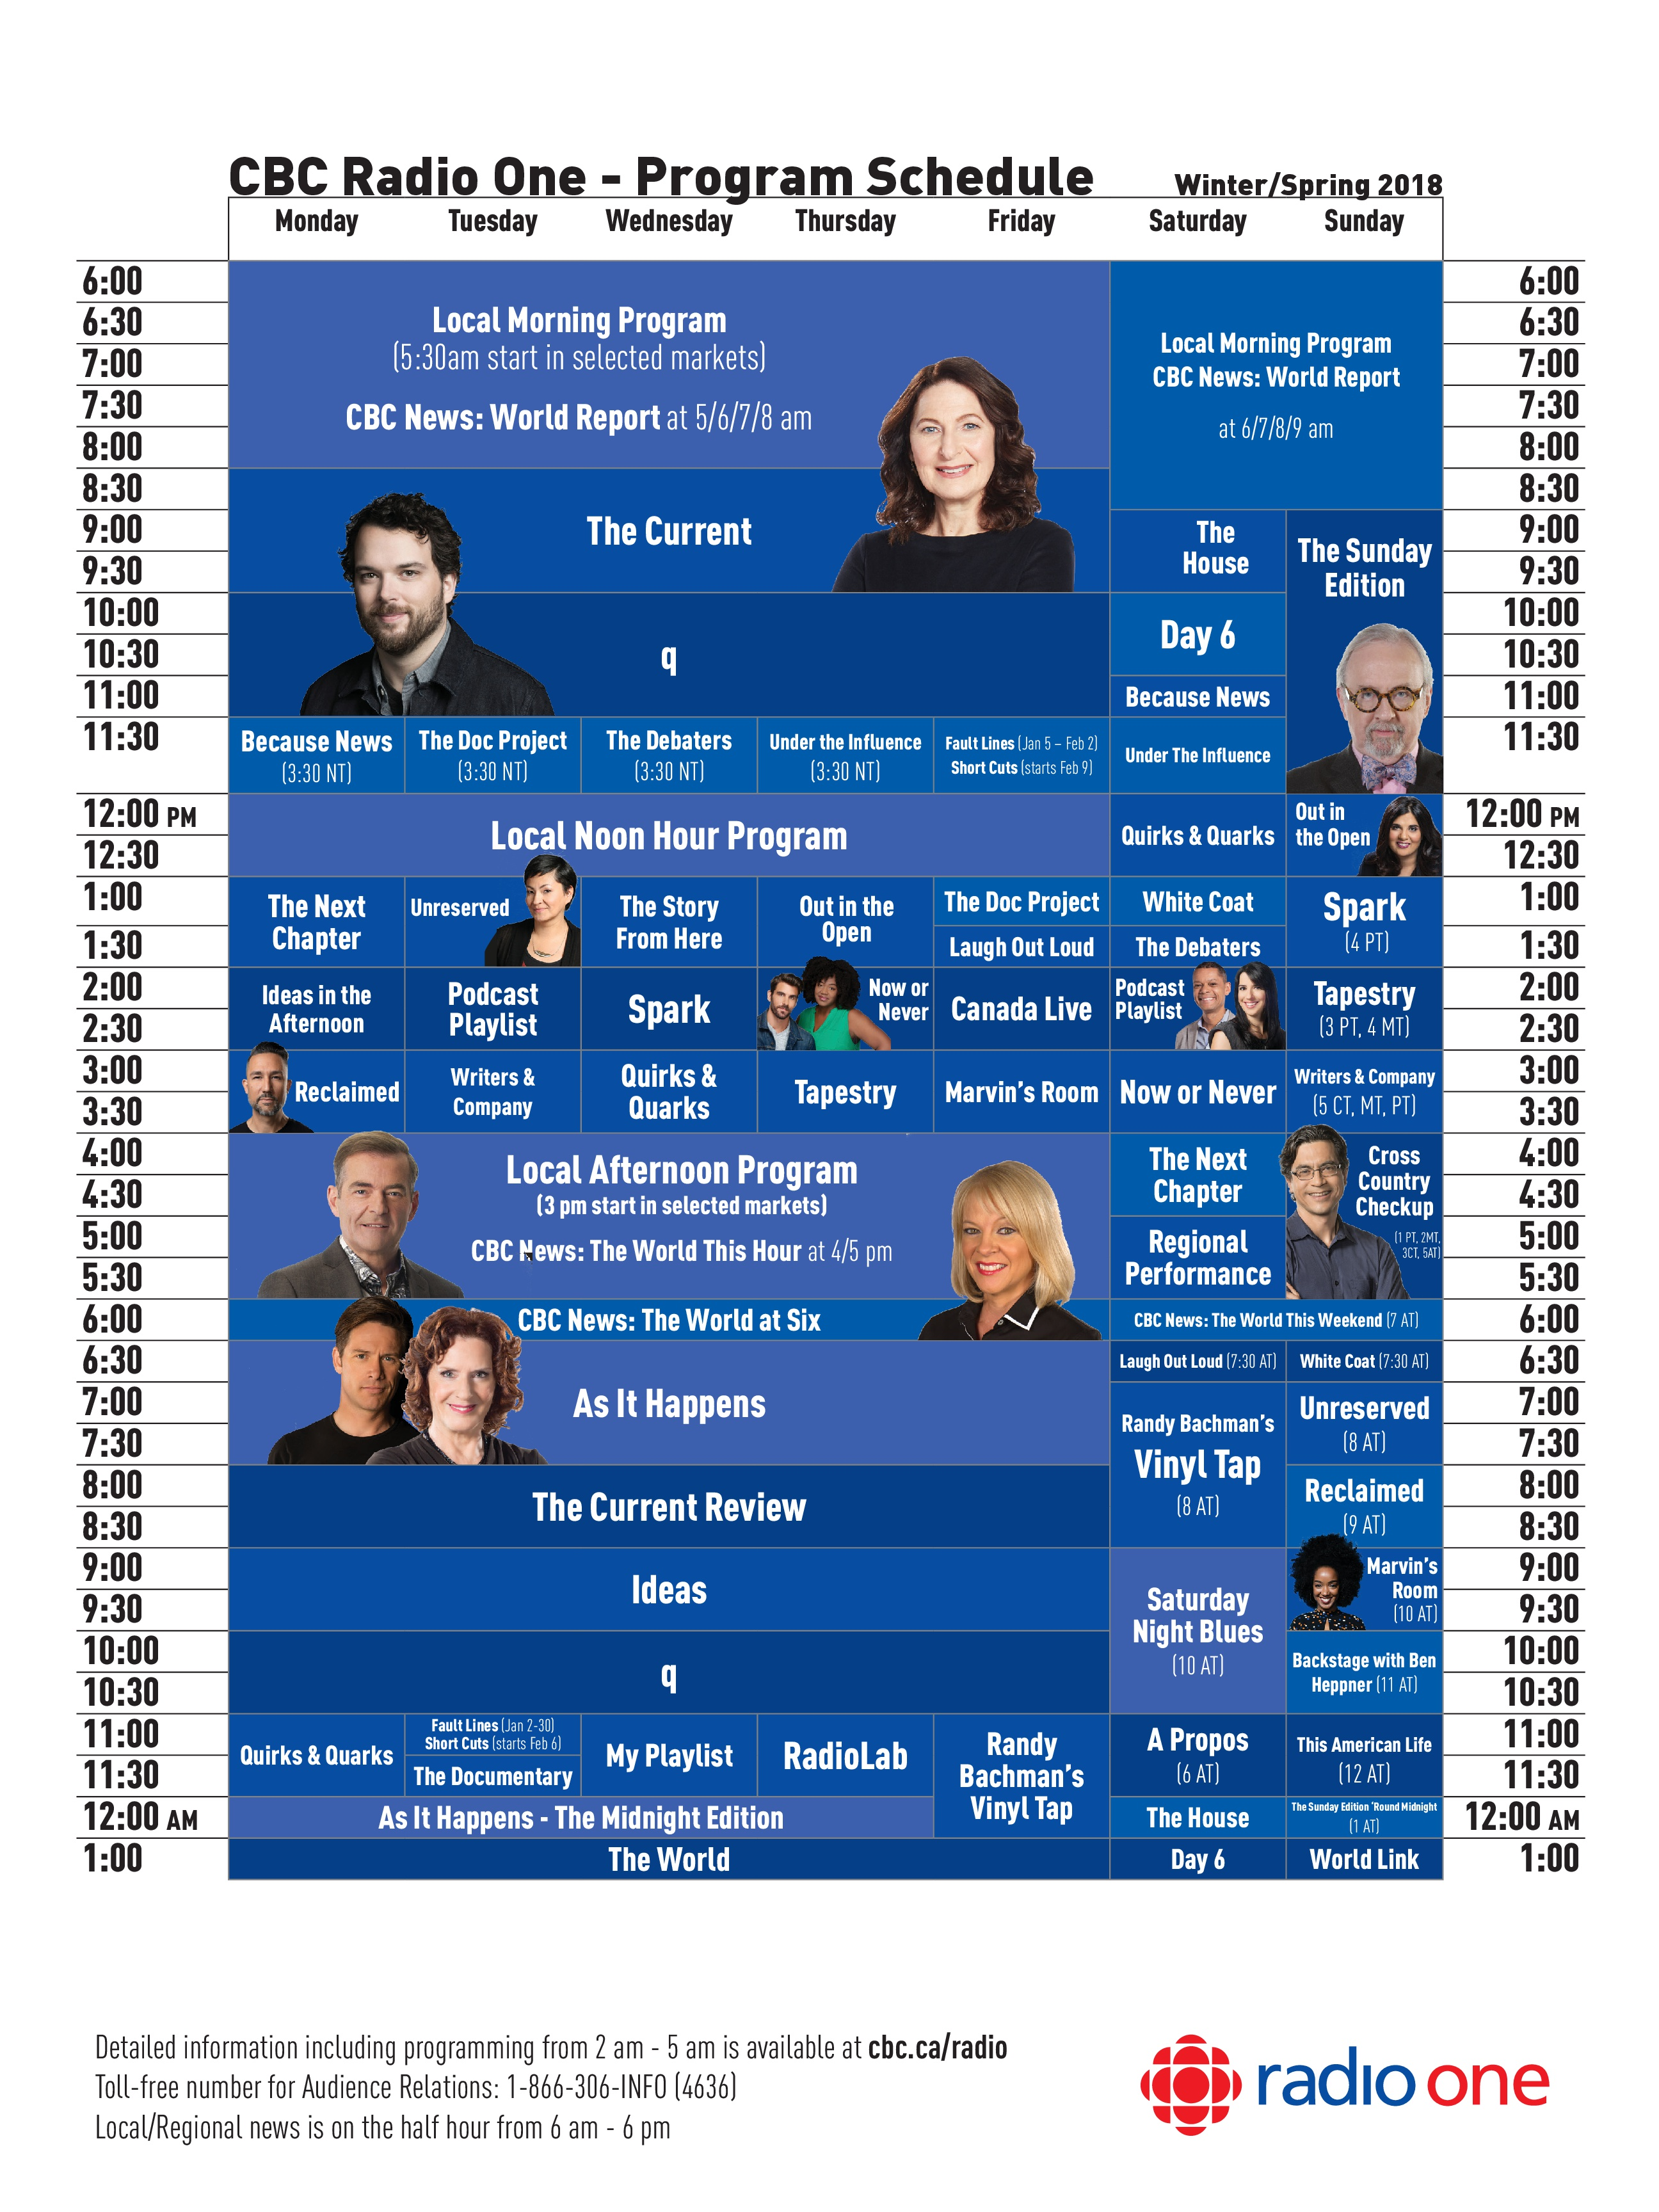 CBC Radio One Winter/Spring 2018 Schedule